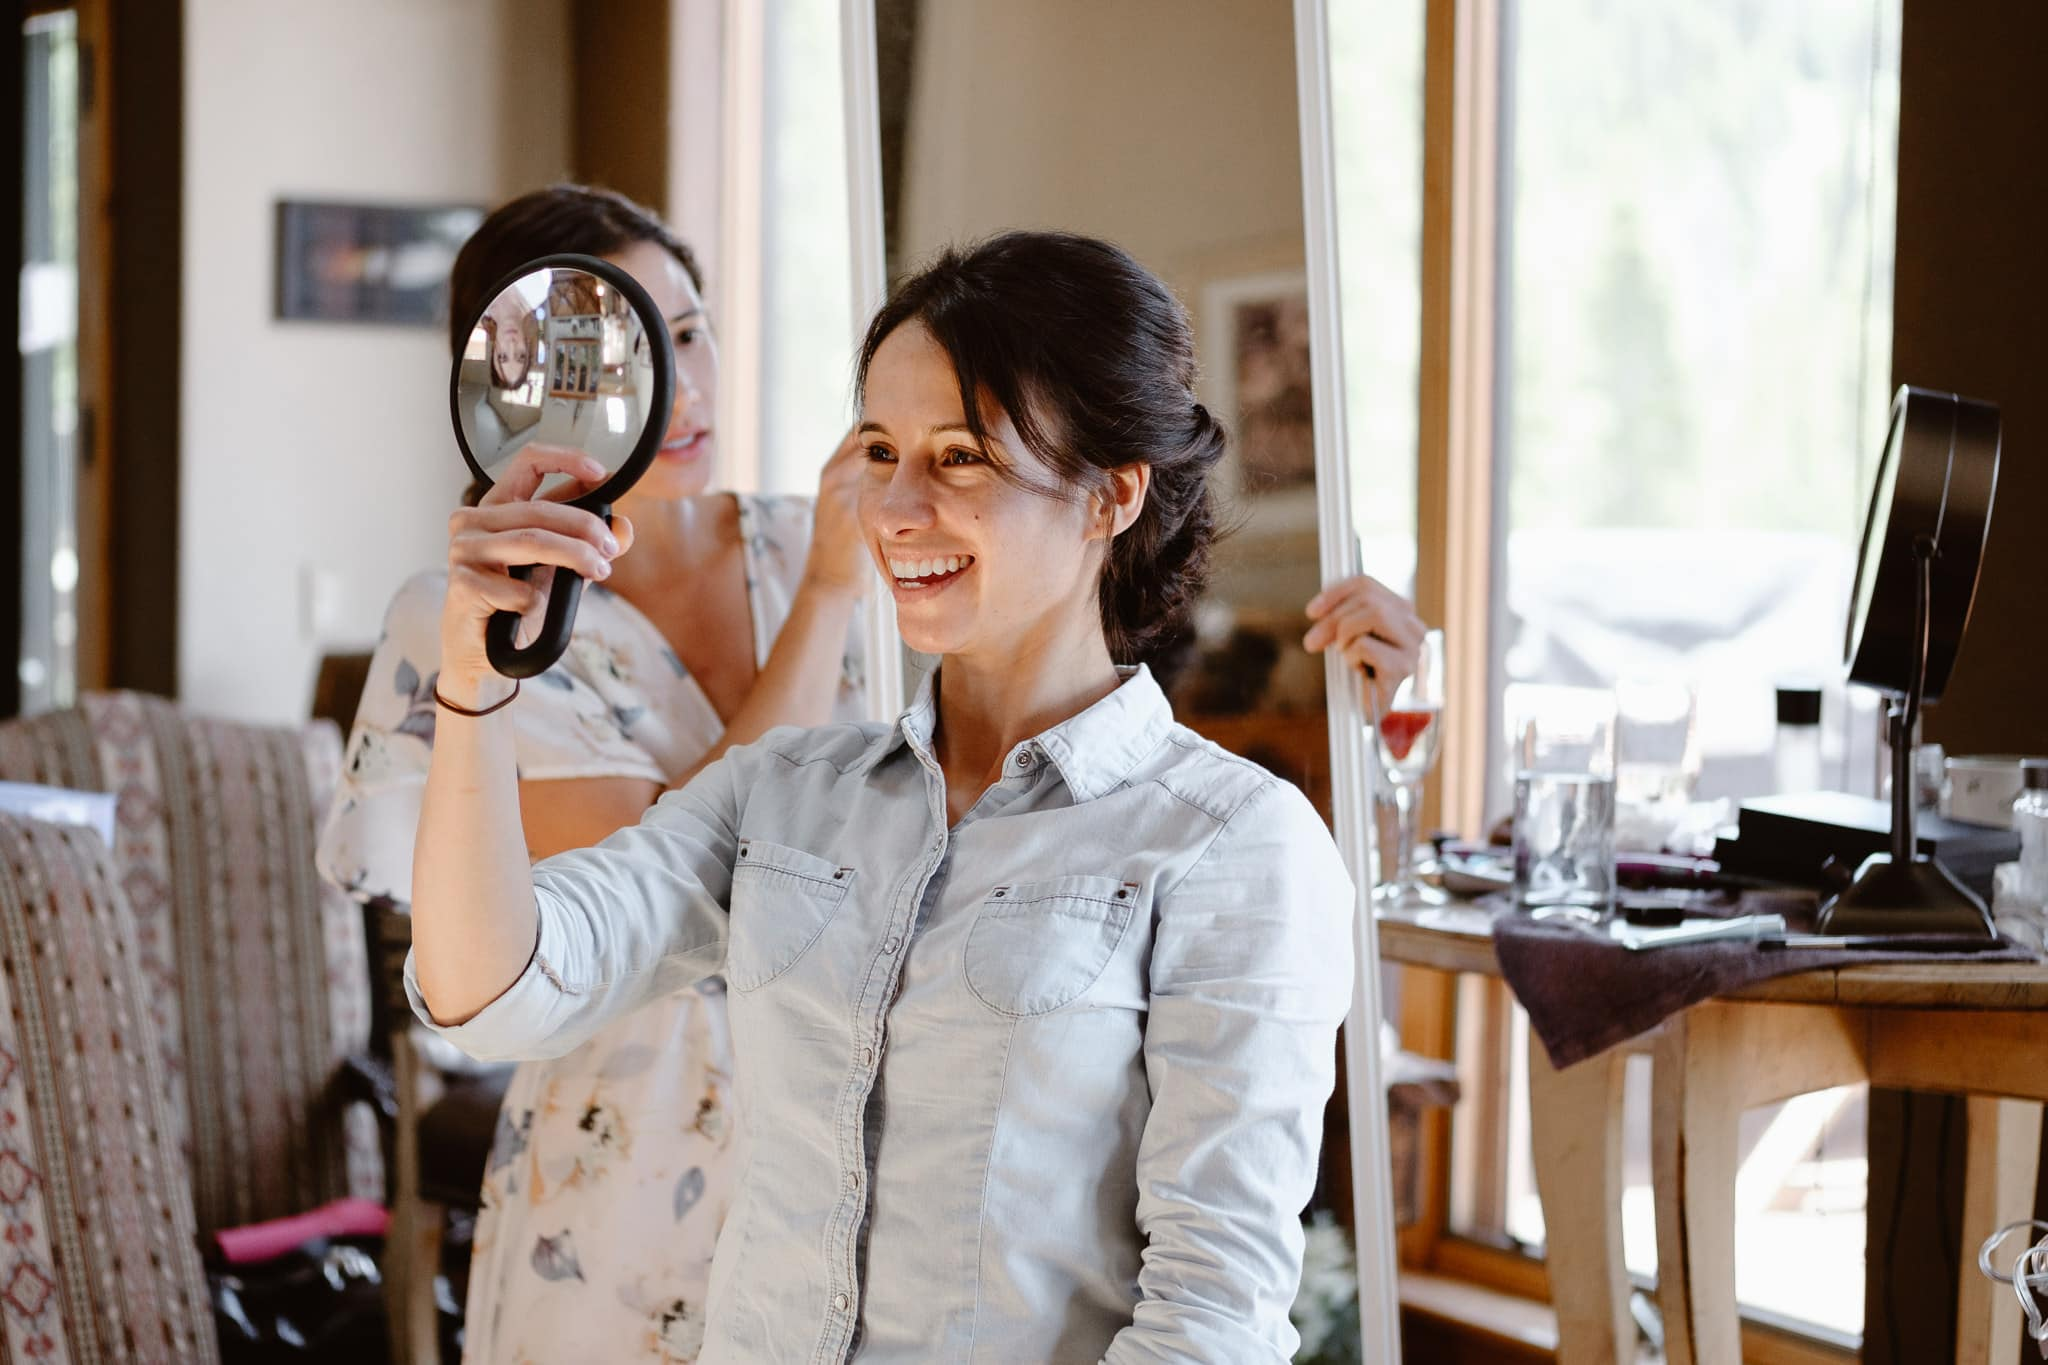 Bride getting ready for Breckenridge Nordic Center wedding, hair and makeup by Naomi Robles